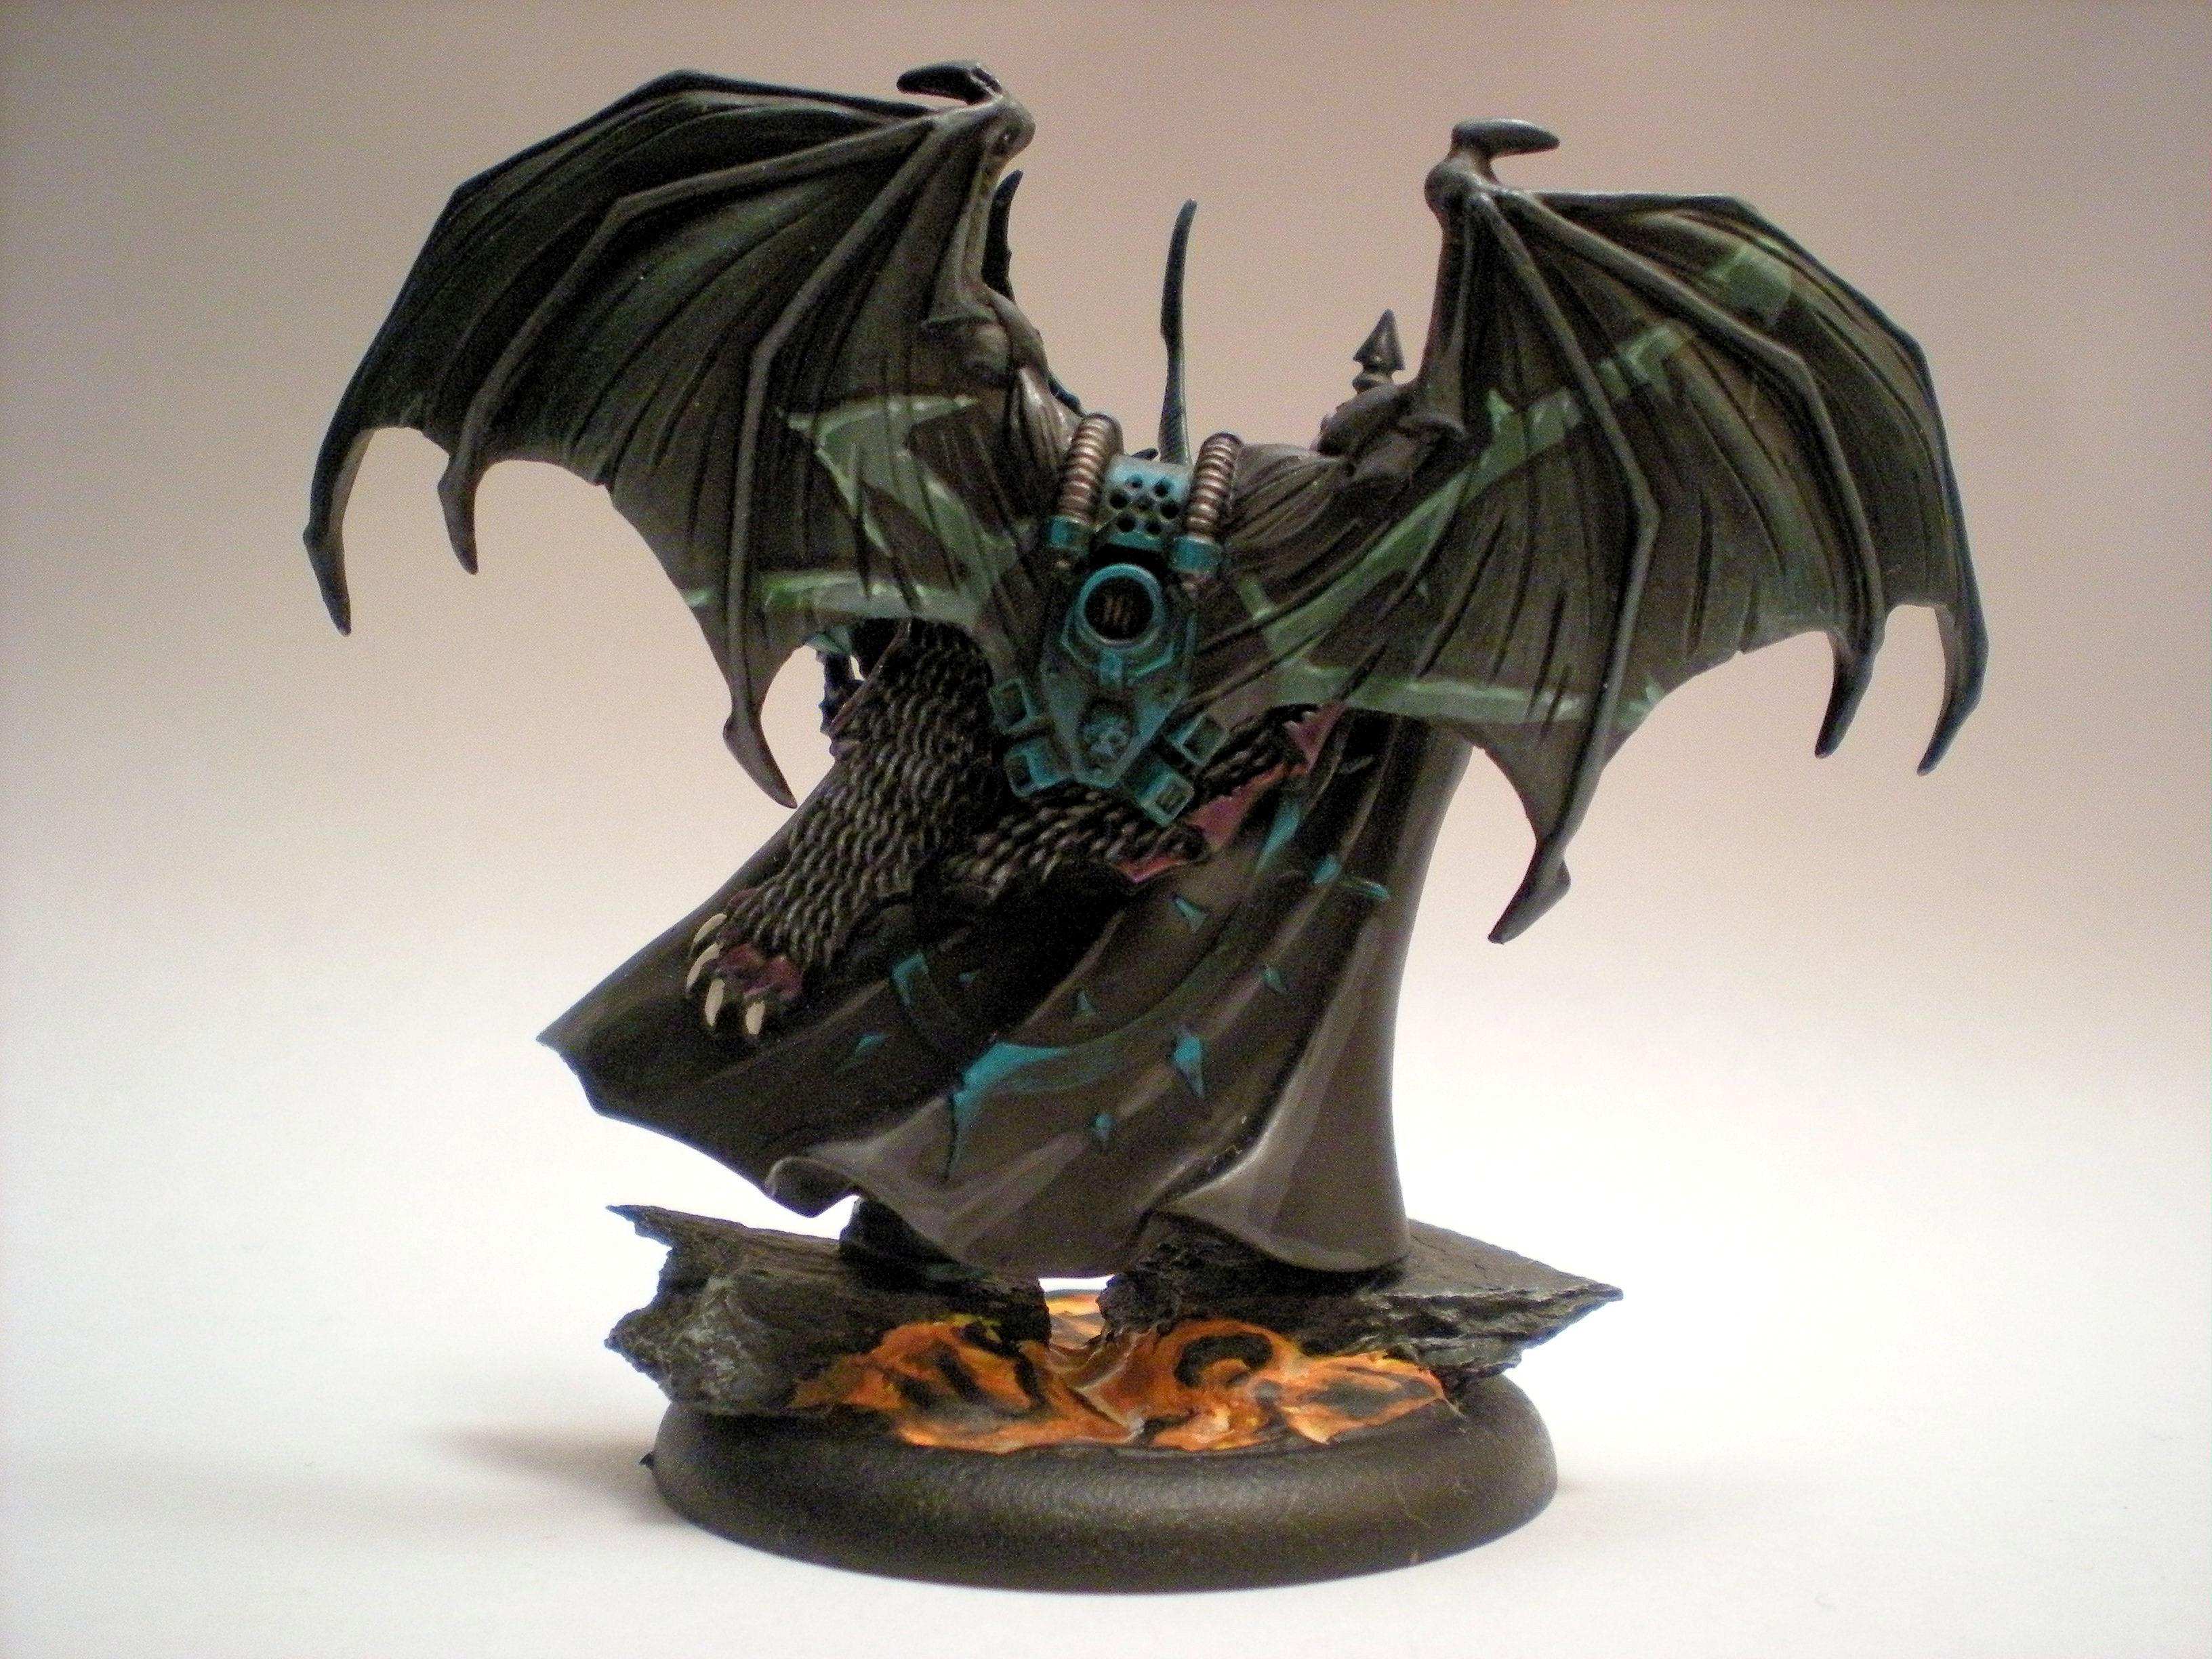 Base, Chaos, Flying, Freehand, Green, Lava, Lord, Slaanesh, Sword, Turquoise, Warhammer 40,000, Winged